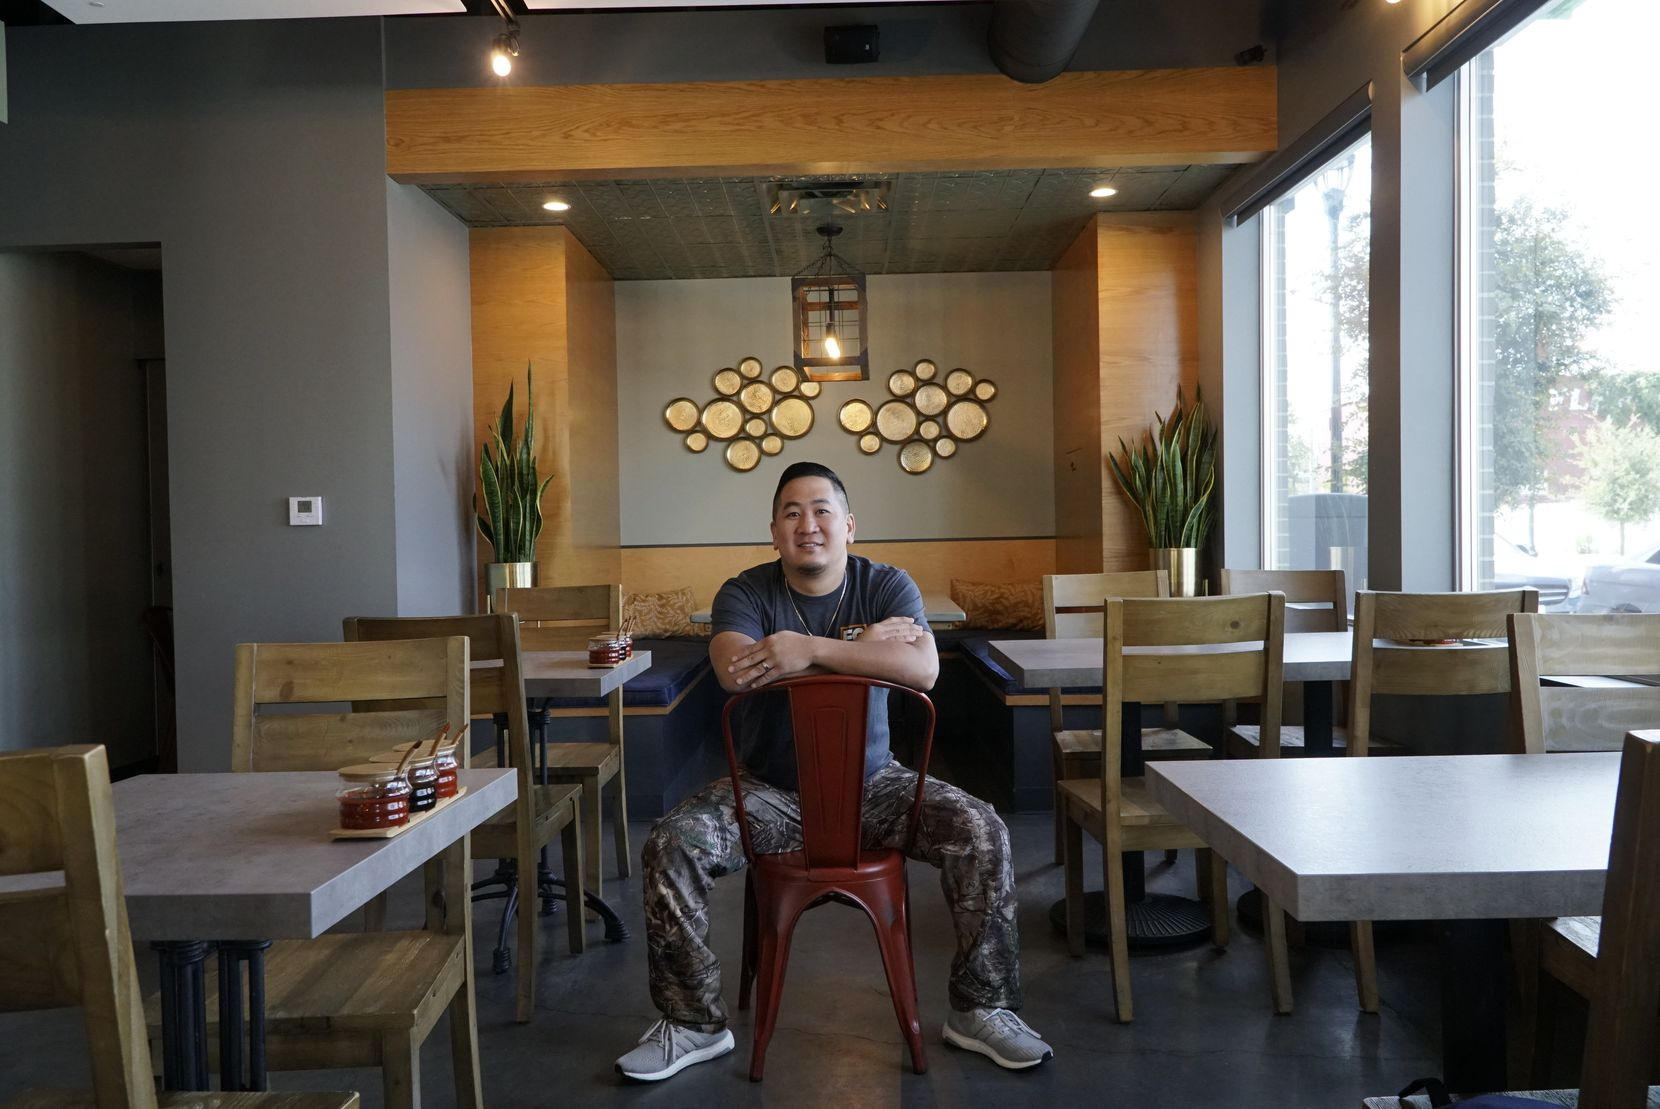 Tuan Pham is owner/chef of Four Sisters Restaurant in Fort Worth.